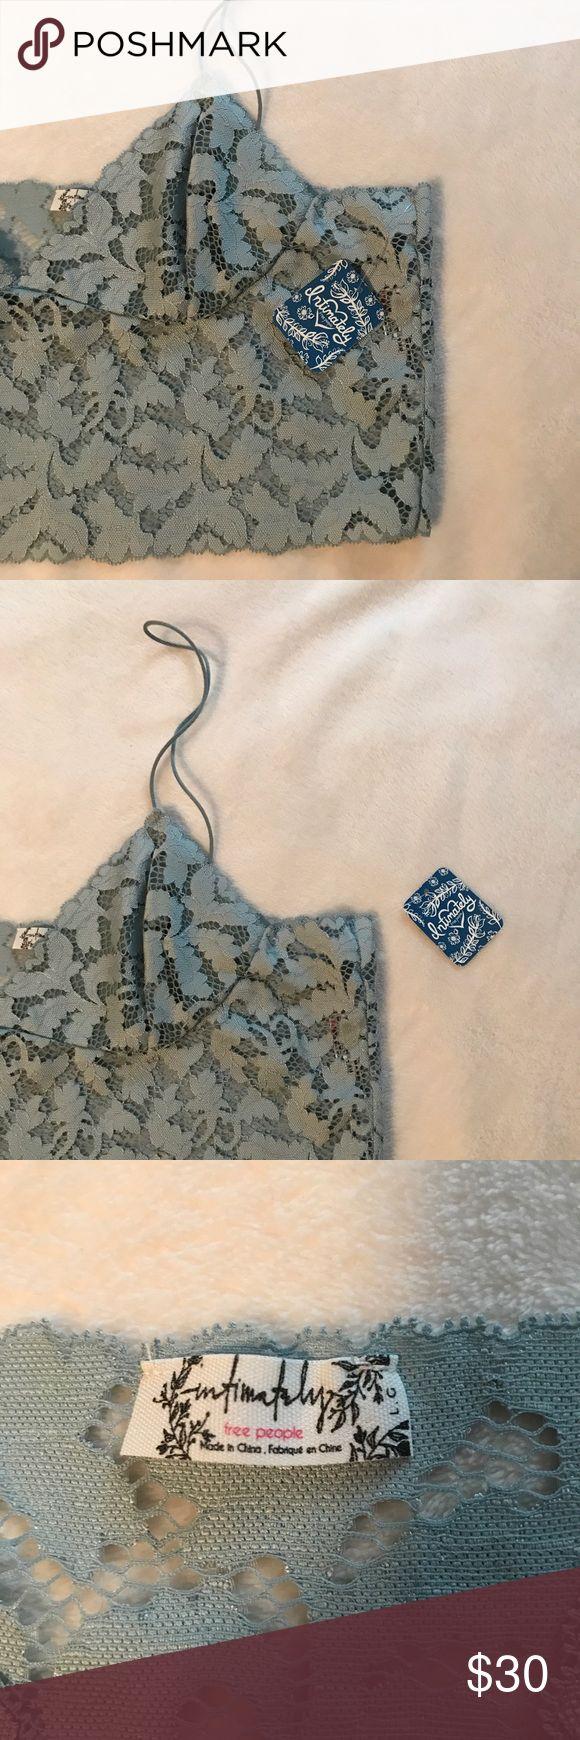 NWT free people brami bralette NWT FREE PEOPLE  sea green color lace bralette with v-neck (could be a cami) size Large Free People Intimates & Sleepwear Bras